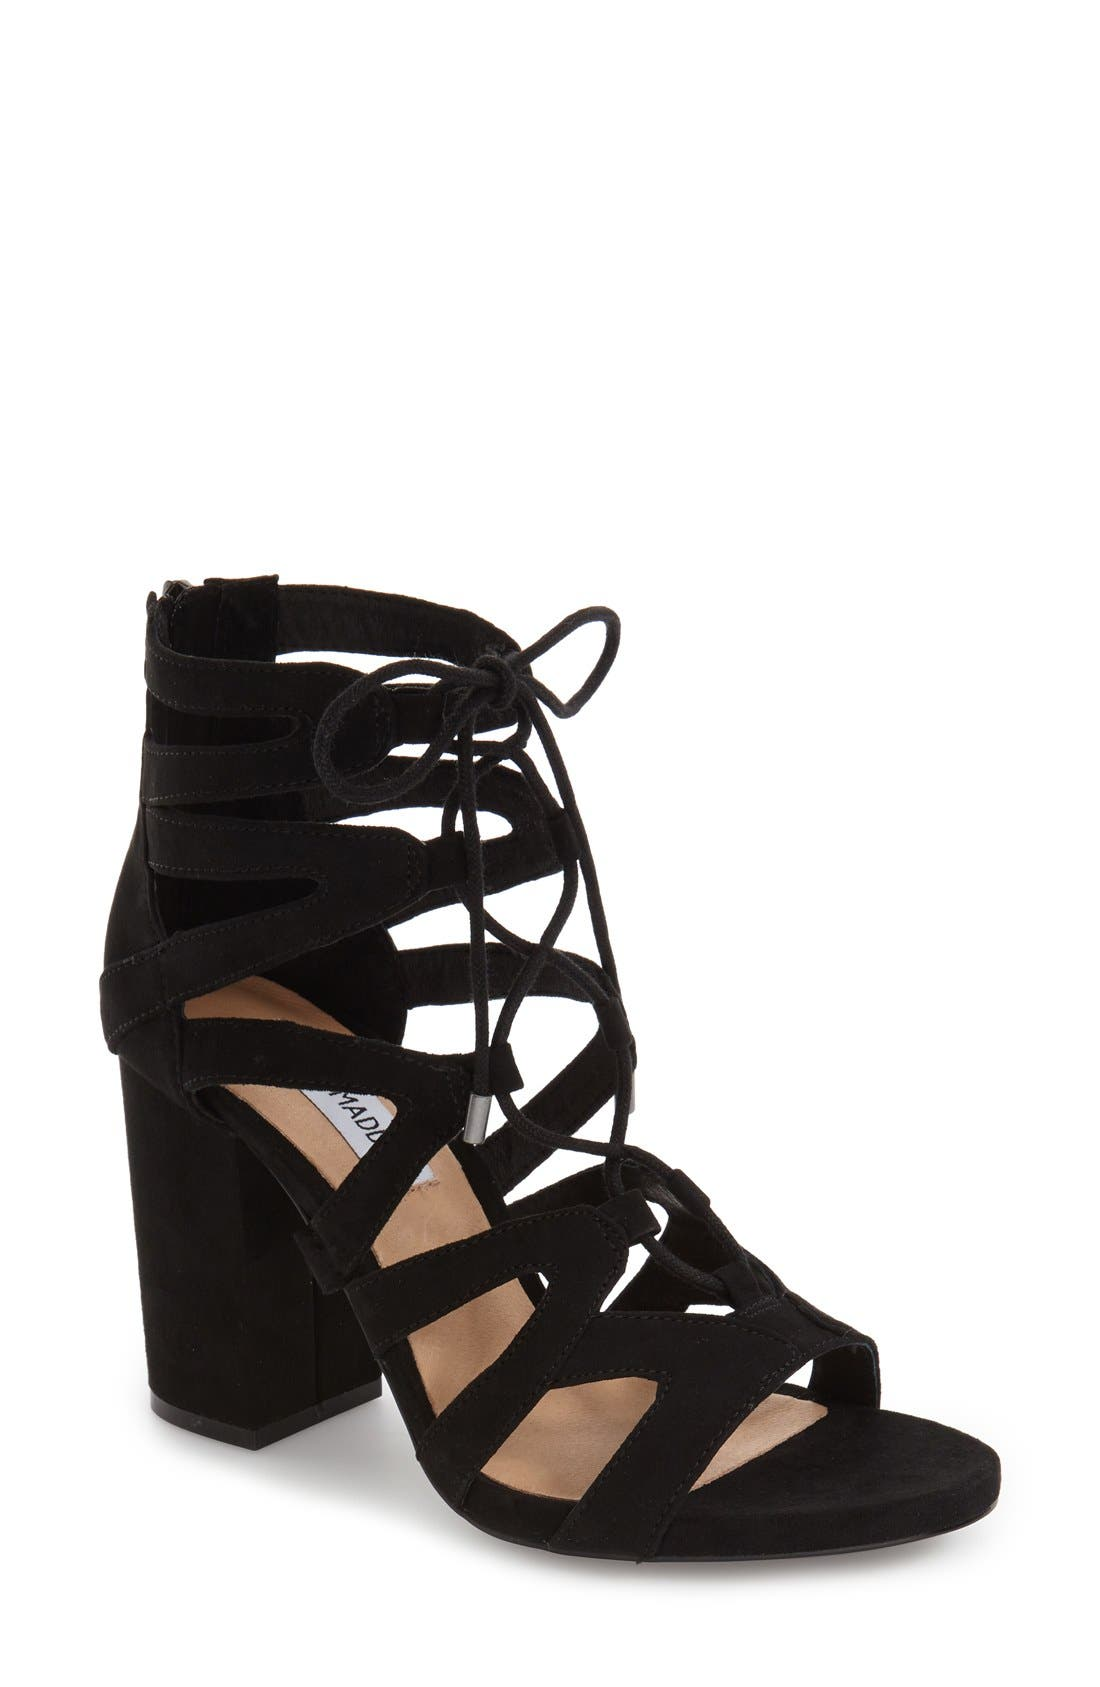 'Gal' Strappy Lace-Up Sandal,                             Main thumbnail 1, color,                             019